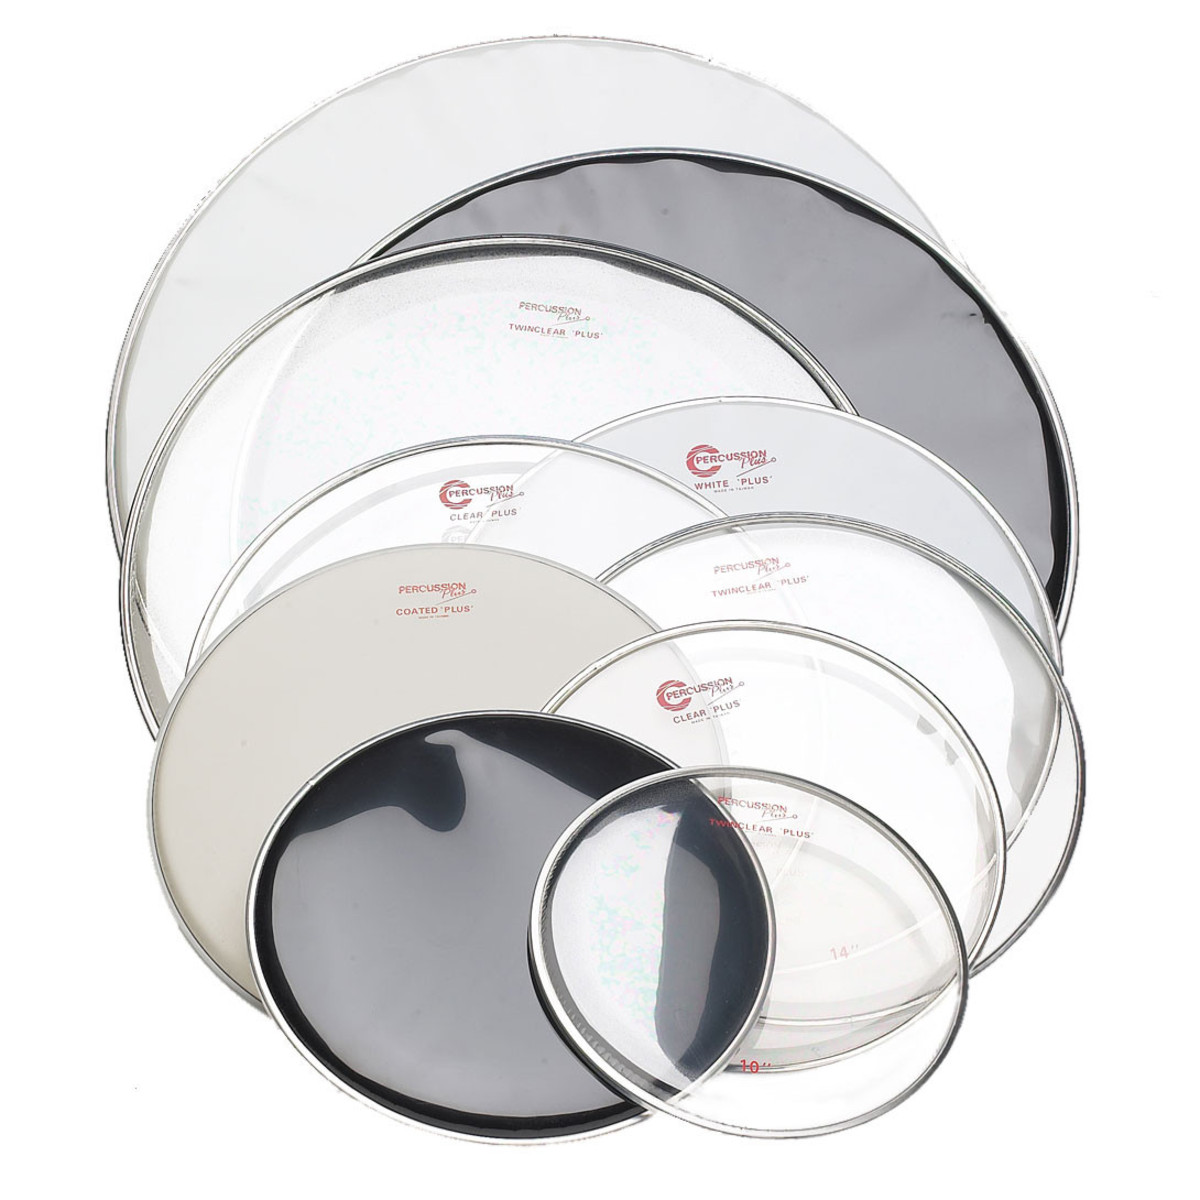 disc percussion plus fusion drum head pack at gear4music. Black Bedroom Furniture Sets. Home Design Ideas